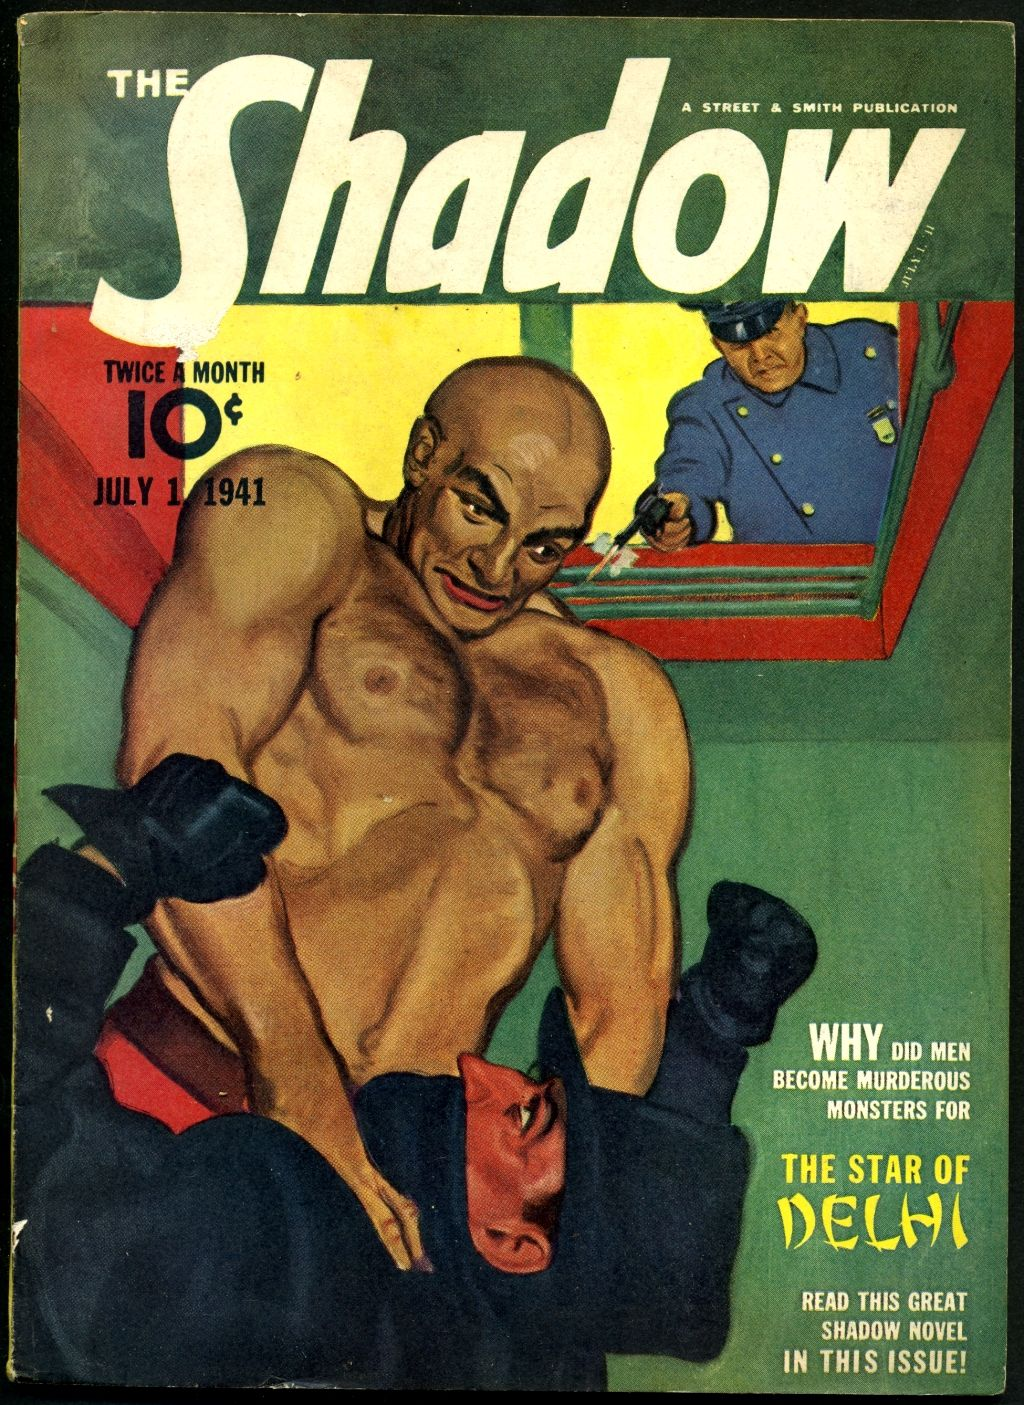 85834264theshadow225thestarofdelhi   The Shadow (of The Pulp Novels)  Pinterest  Shadows, The O'jays And